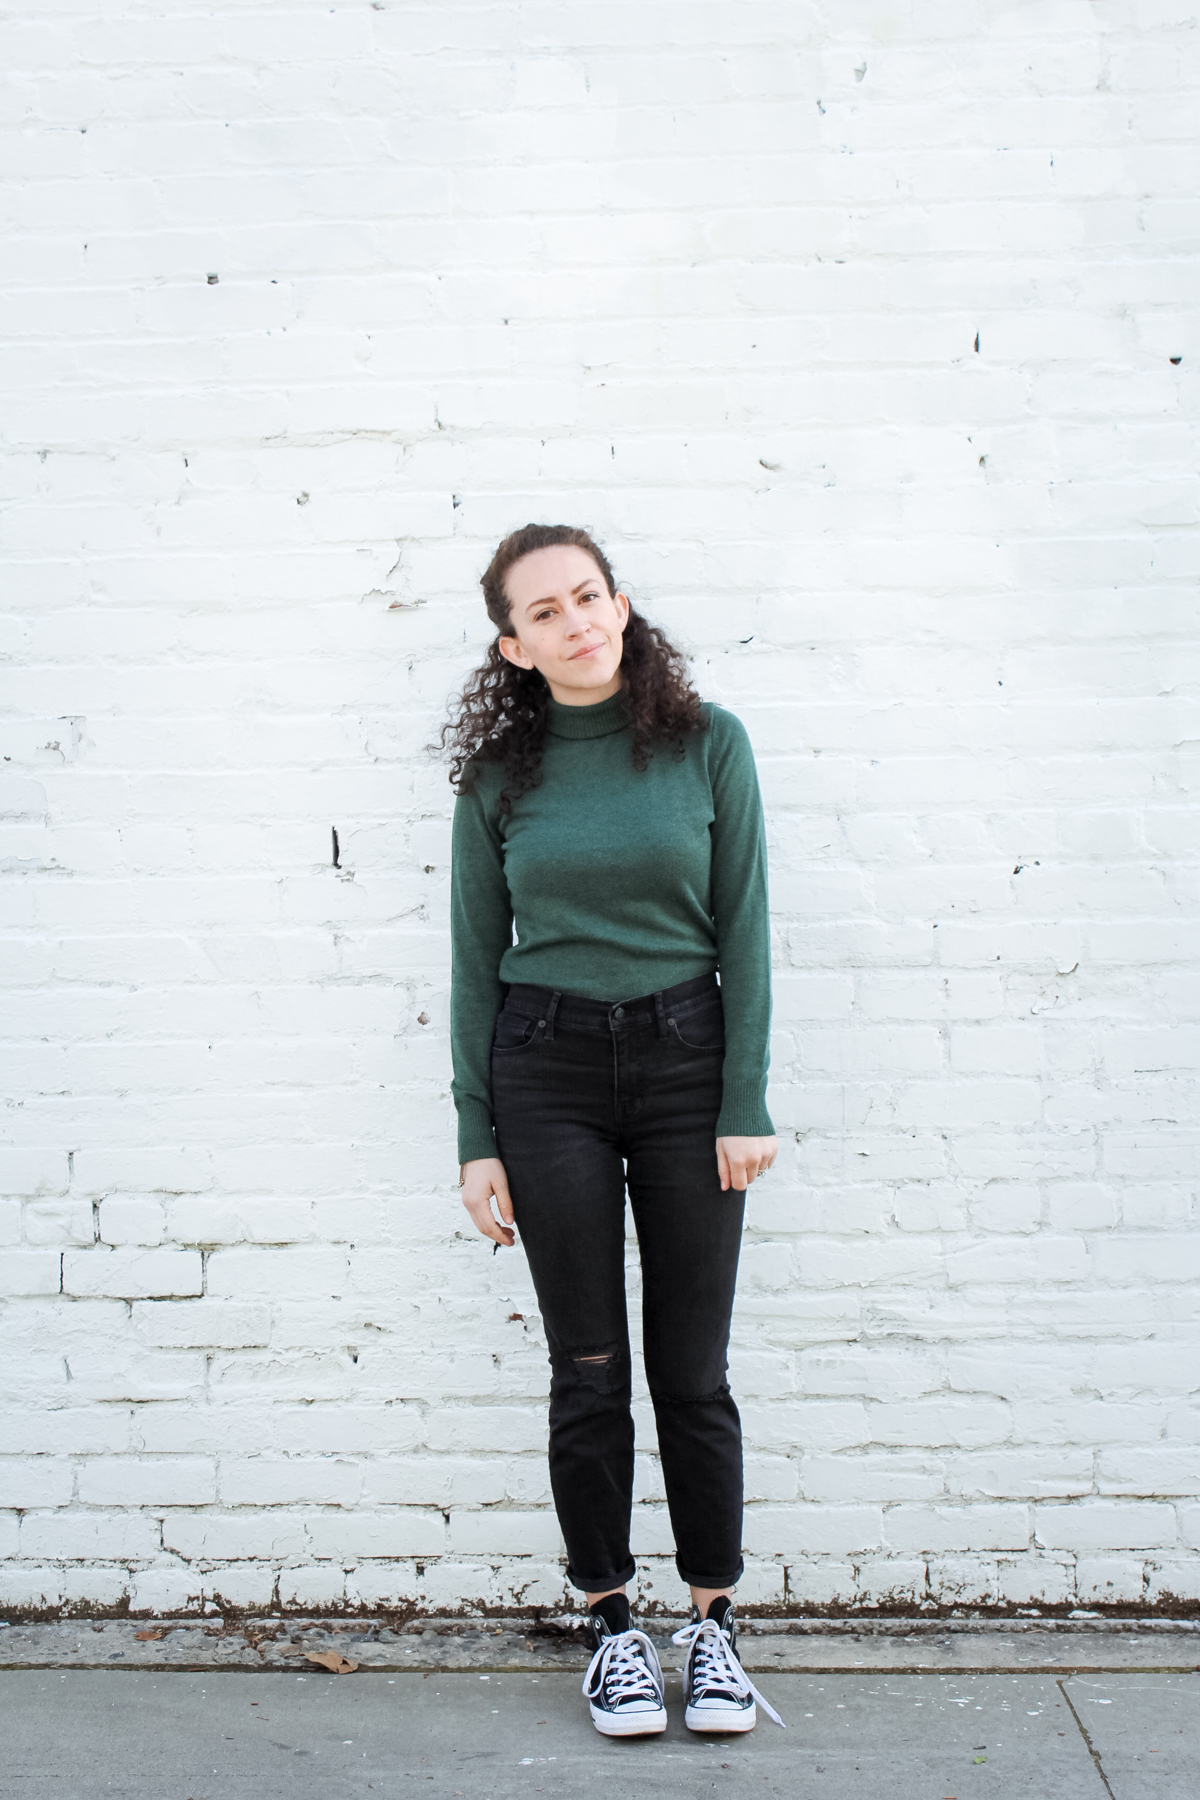 wearing my moss green turtleneck sweater with high rise madewell jeans and high top converse for day 7 of the spring 10x10 & unfancy remix challenge. the pieces all come from my spring capsule wardrobe | tintedgreen